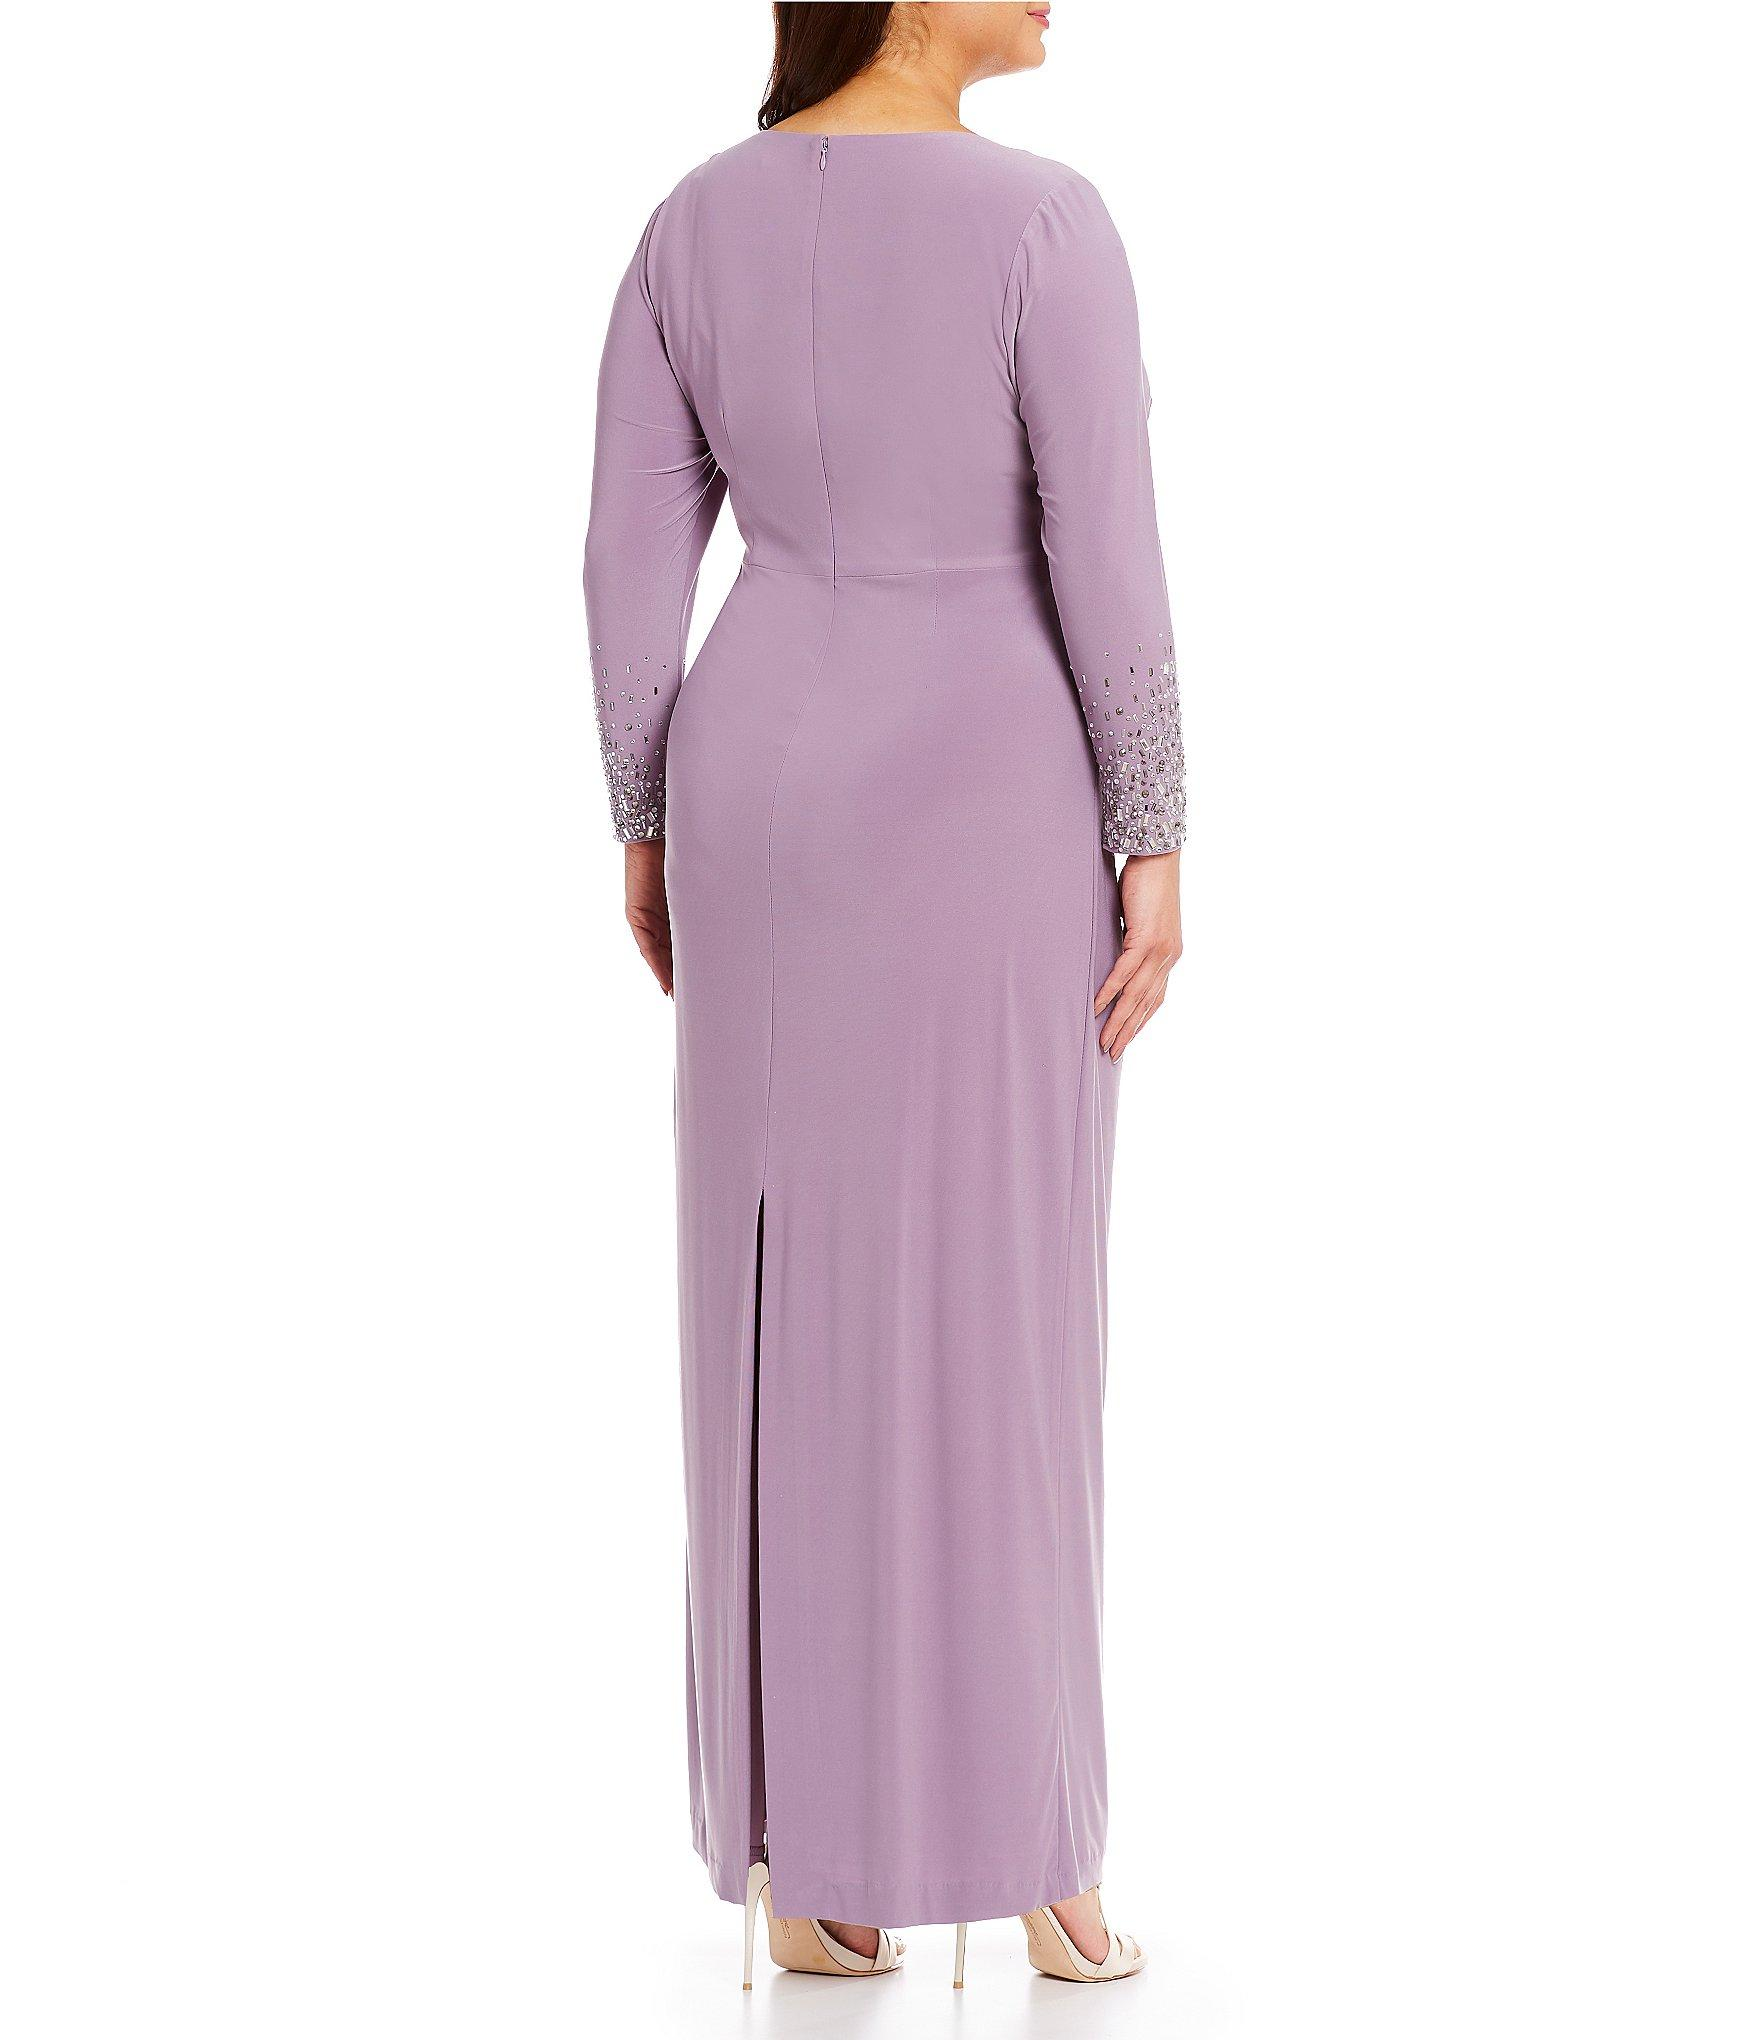 02e9b5a32b7 Vince Camuto - Purple Plus Size Jersey Beaded Long Sleeve Ruched Gown -  Lyst. View fullscreen